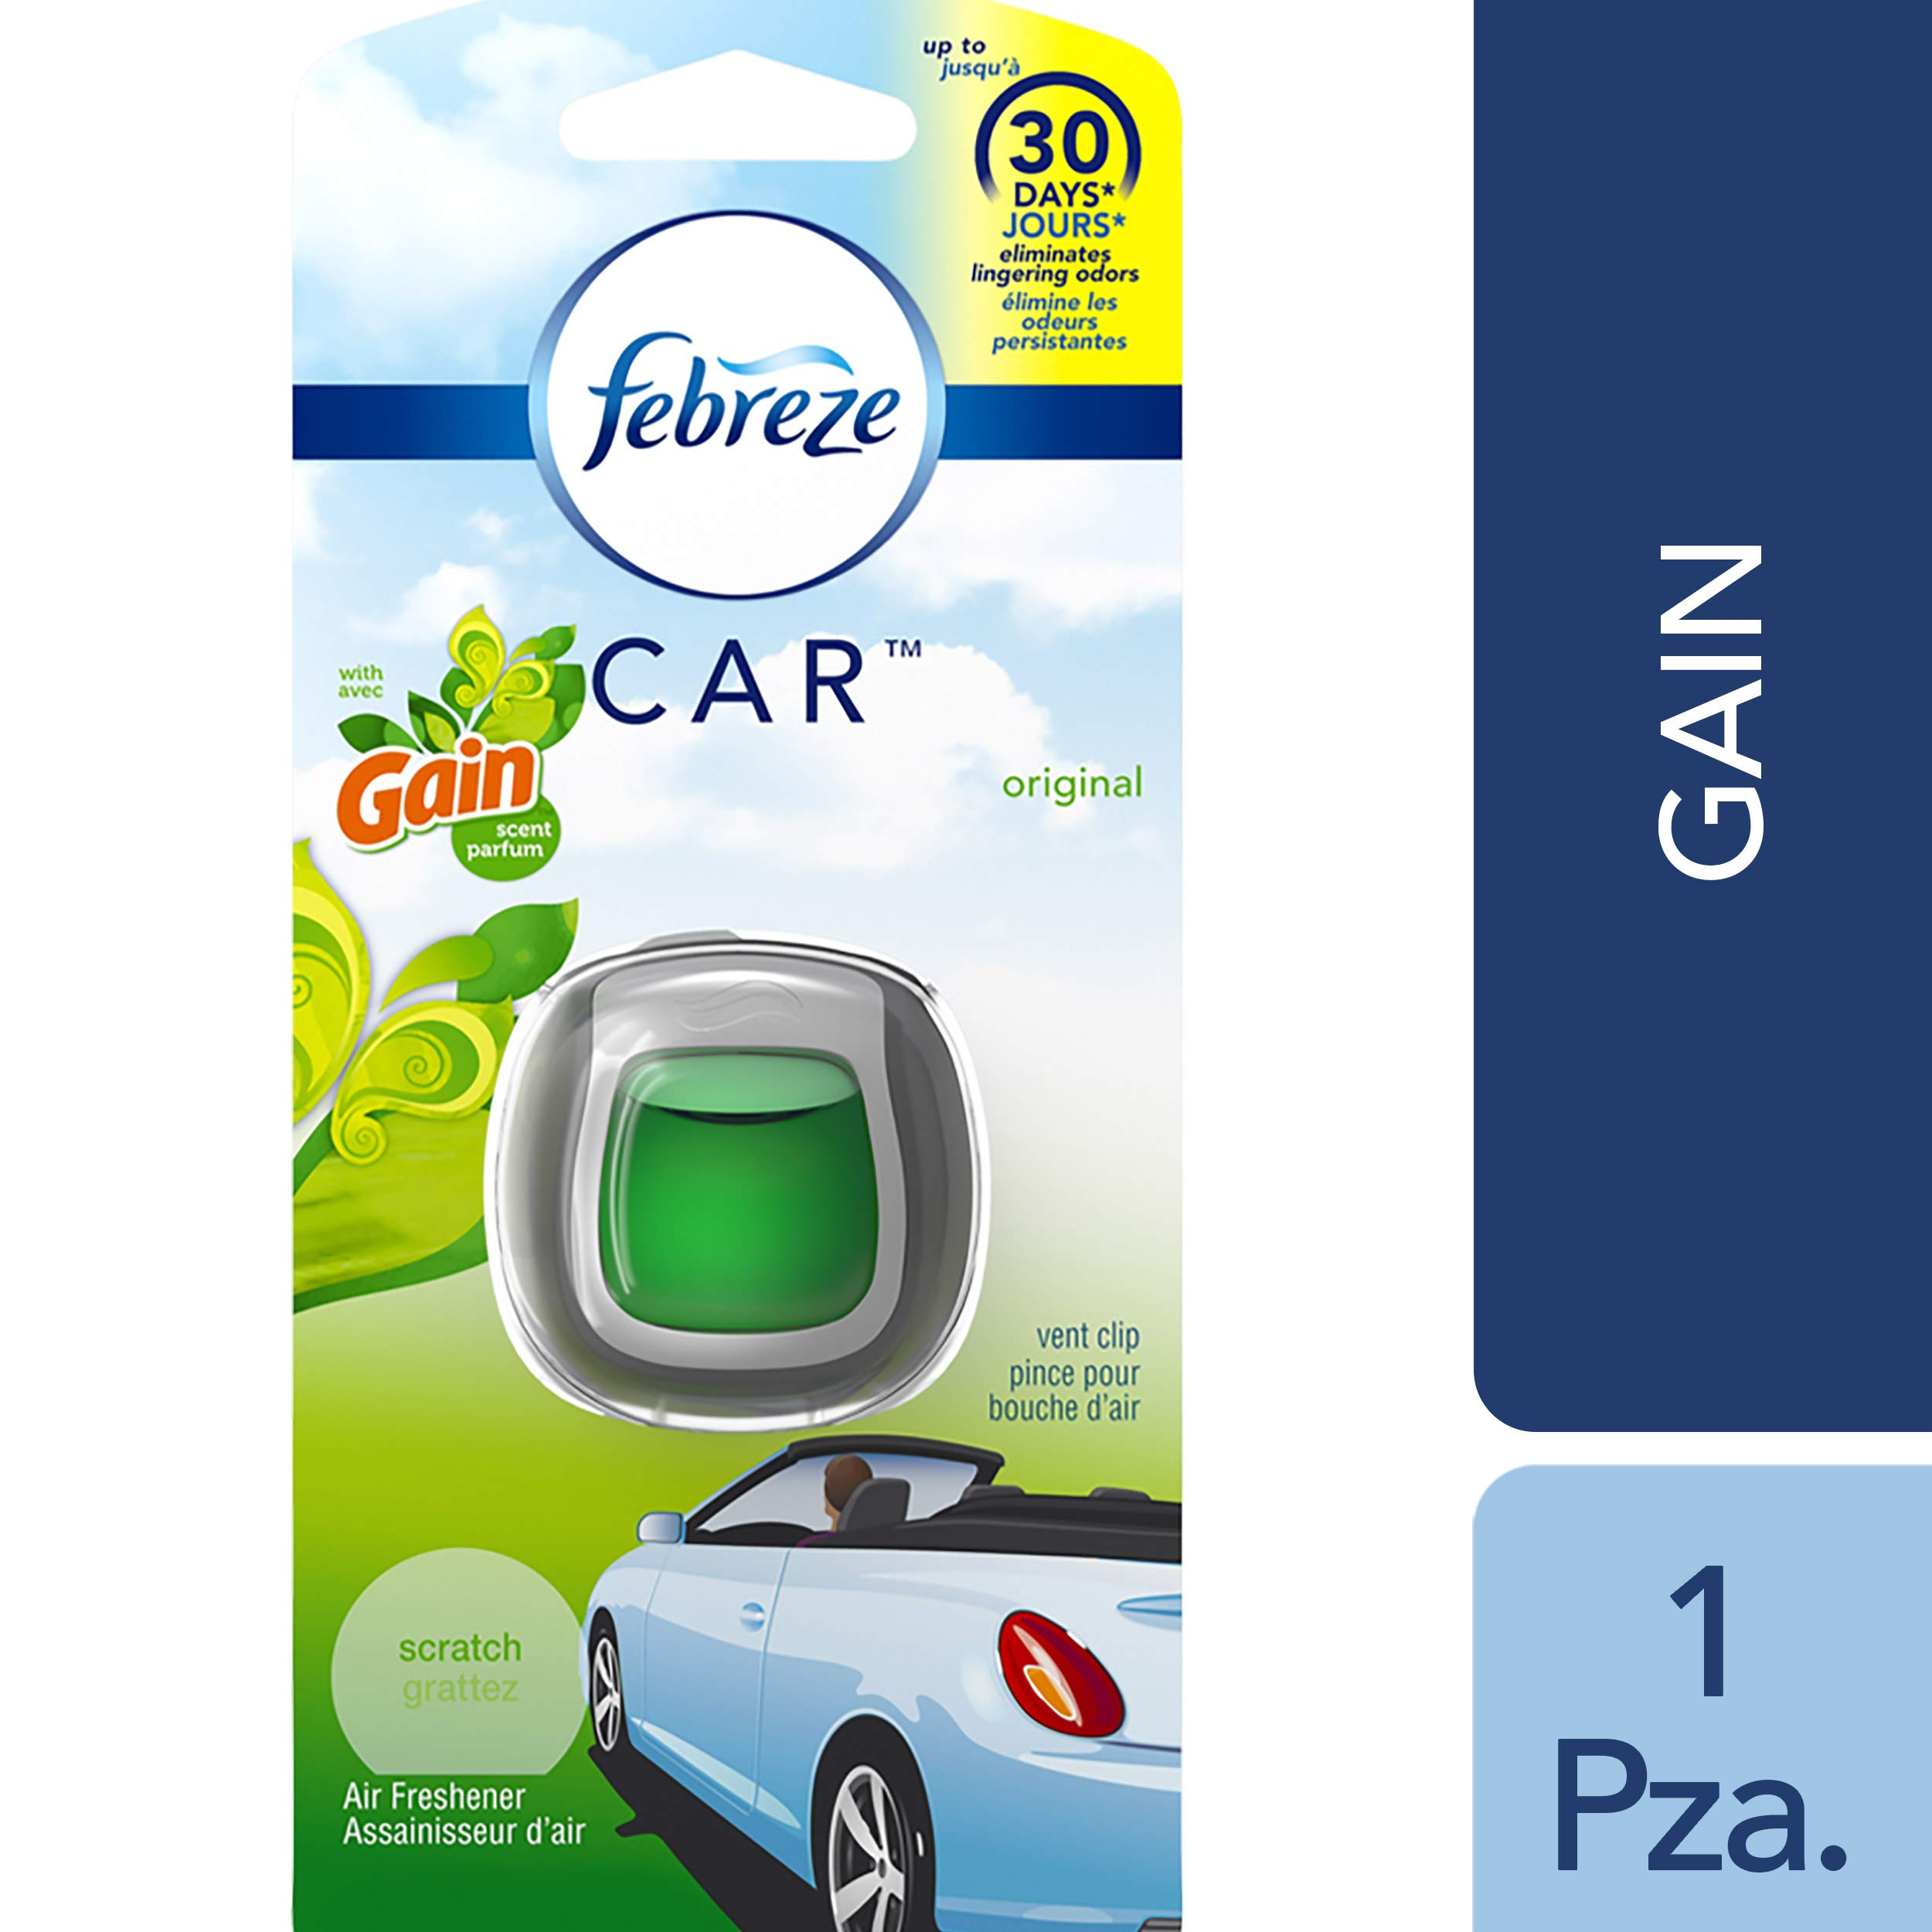 Febreze Car Vent Clip Auto, Home Office AC Air Freshener & Odor Eliminator, With Gain Original